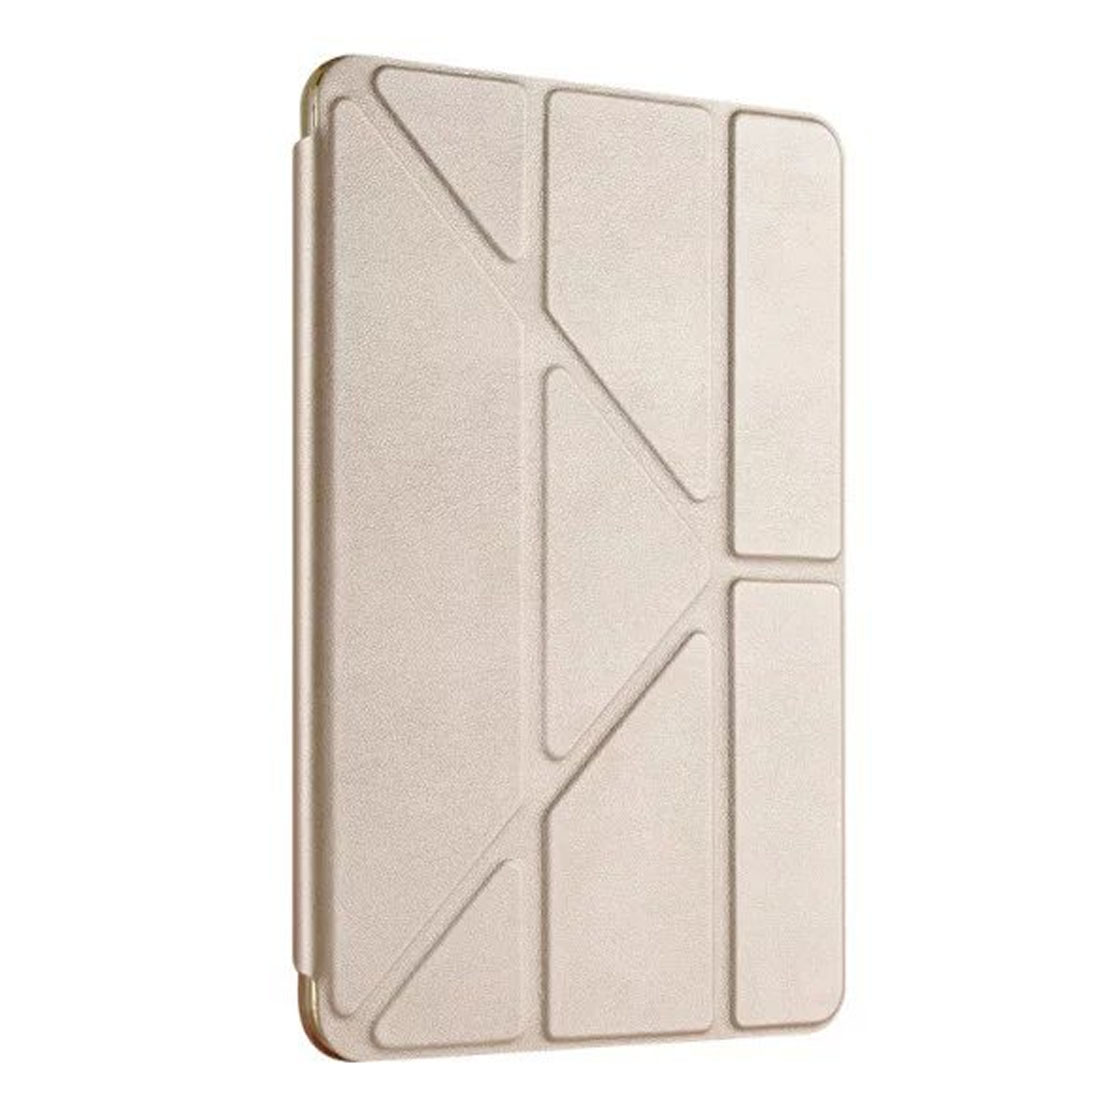 Etmakit Quality Ultra Thin Stand Design TPU Soft case For ipad mini 3 2 1 Cover Colorful Flip Smart Cover Smart Table Case cover for ipad mini4 cover high quality soft tpu rubber back case for ipad mini 4 silicone back cover semi transparent case shell skin